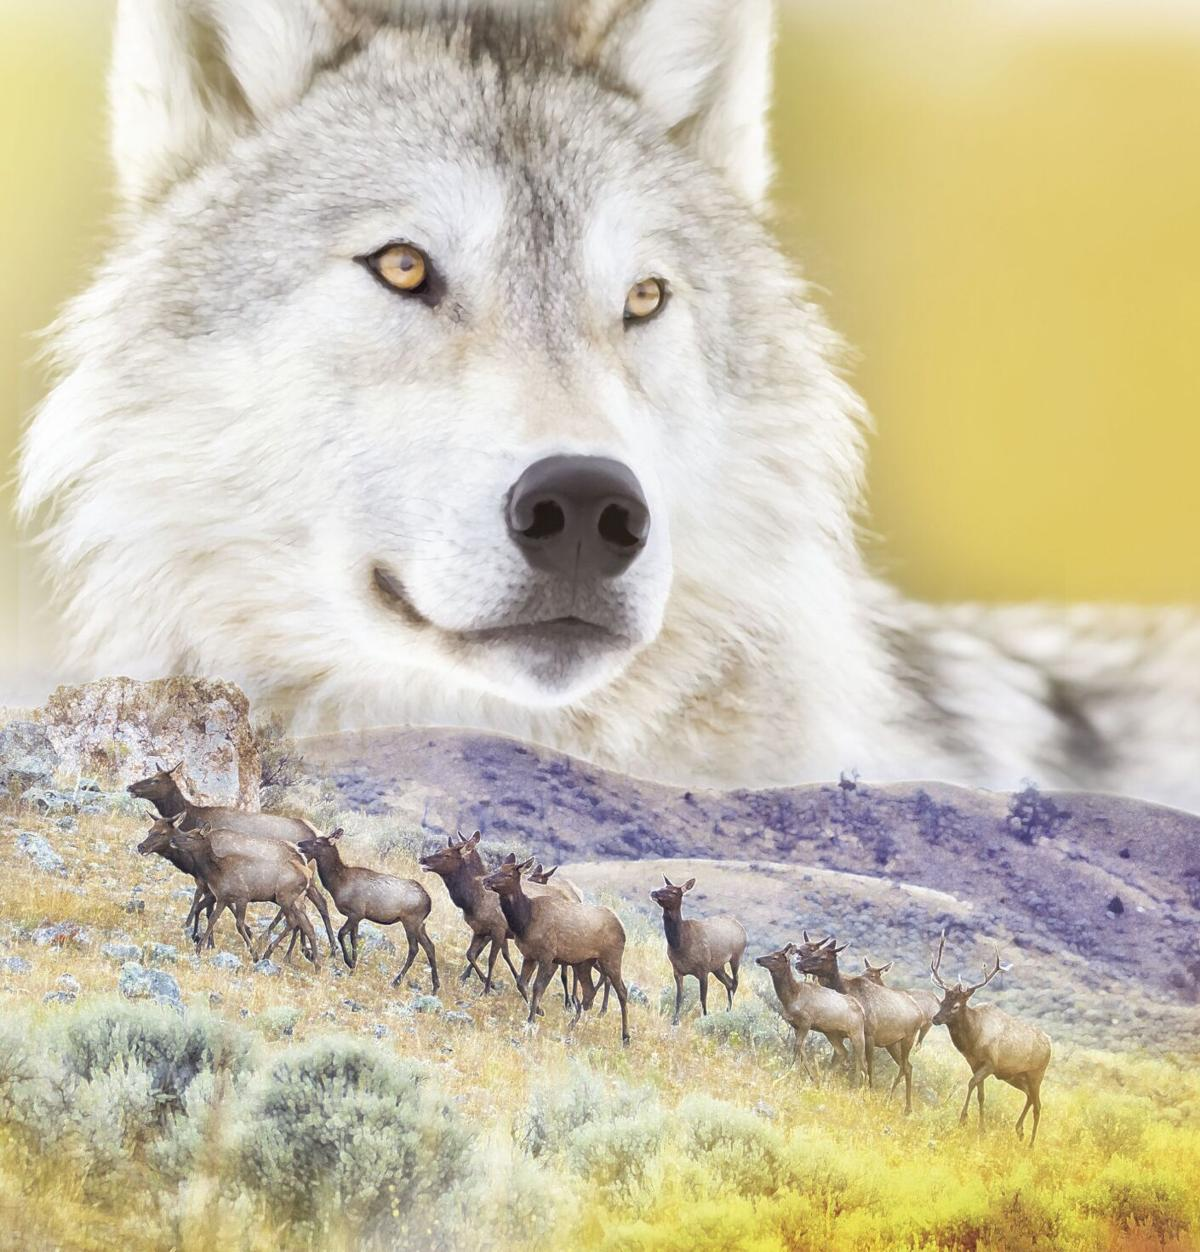 wolves yellowstone image WIDE.tif